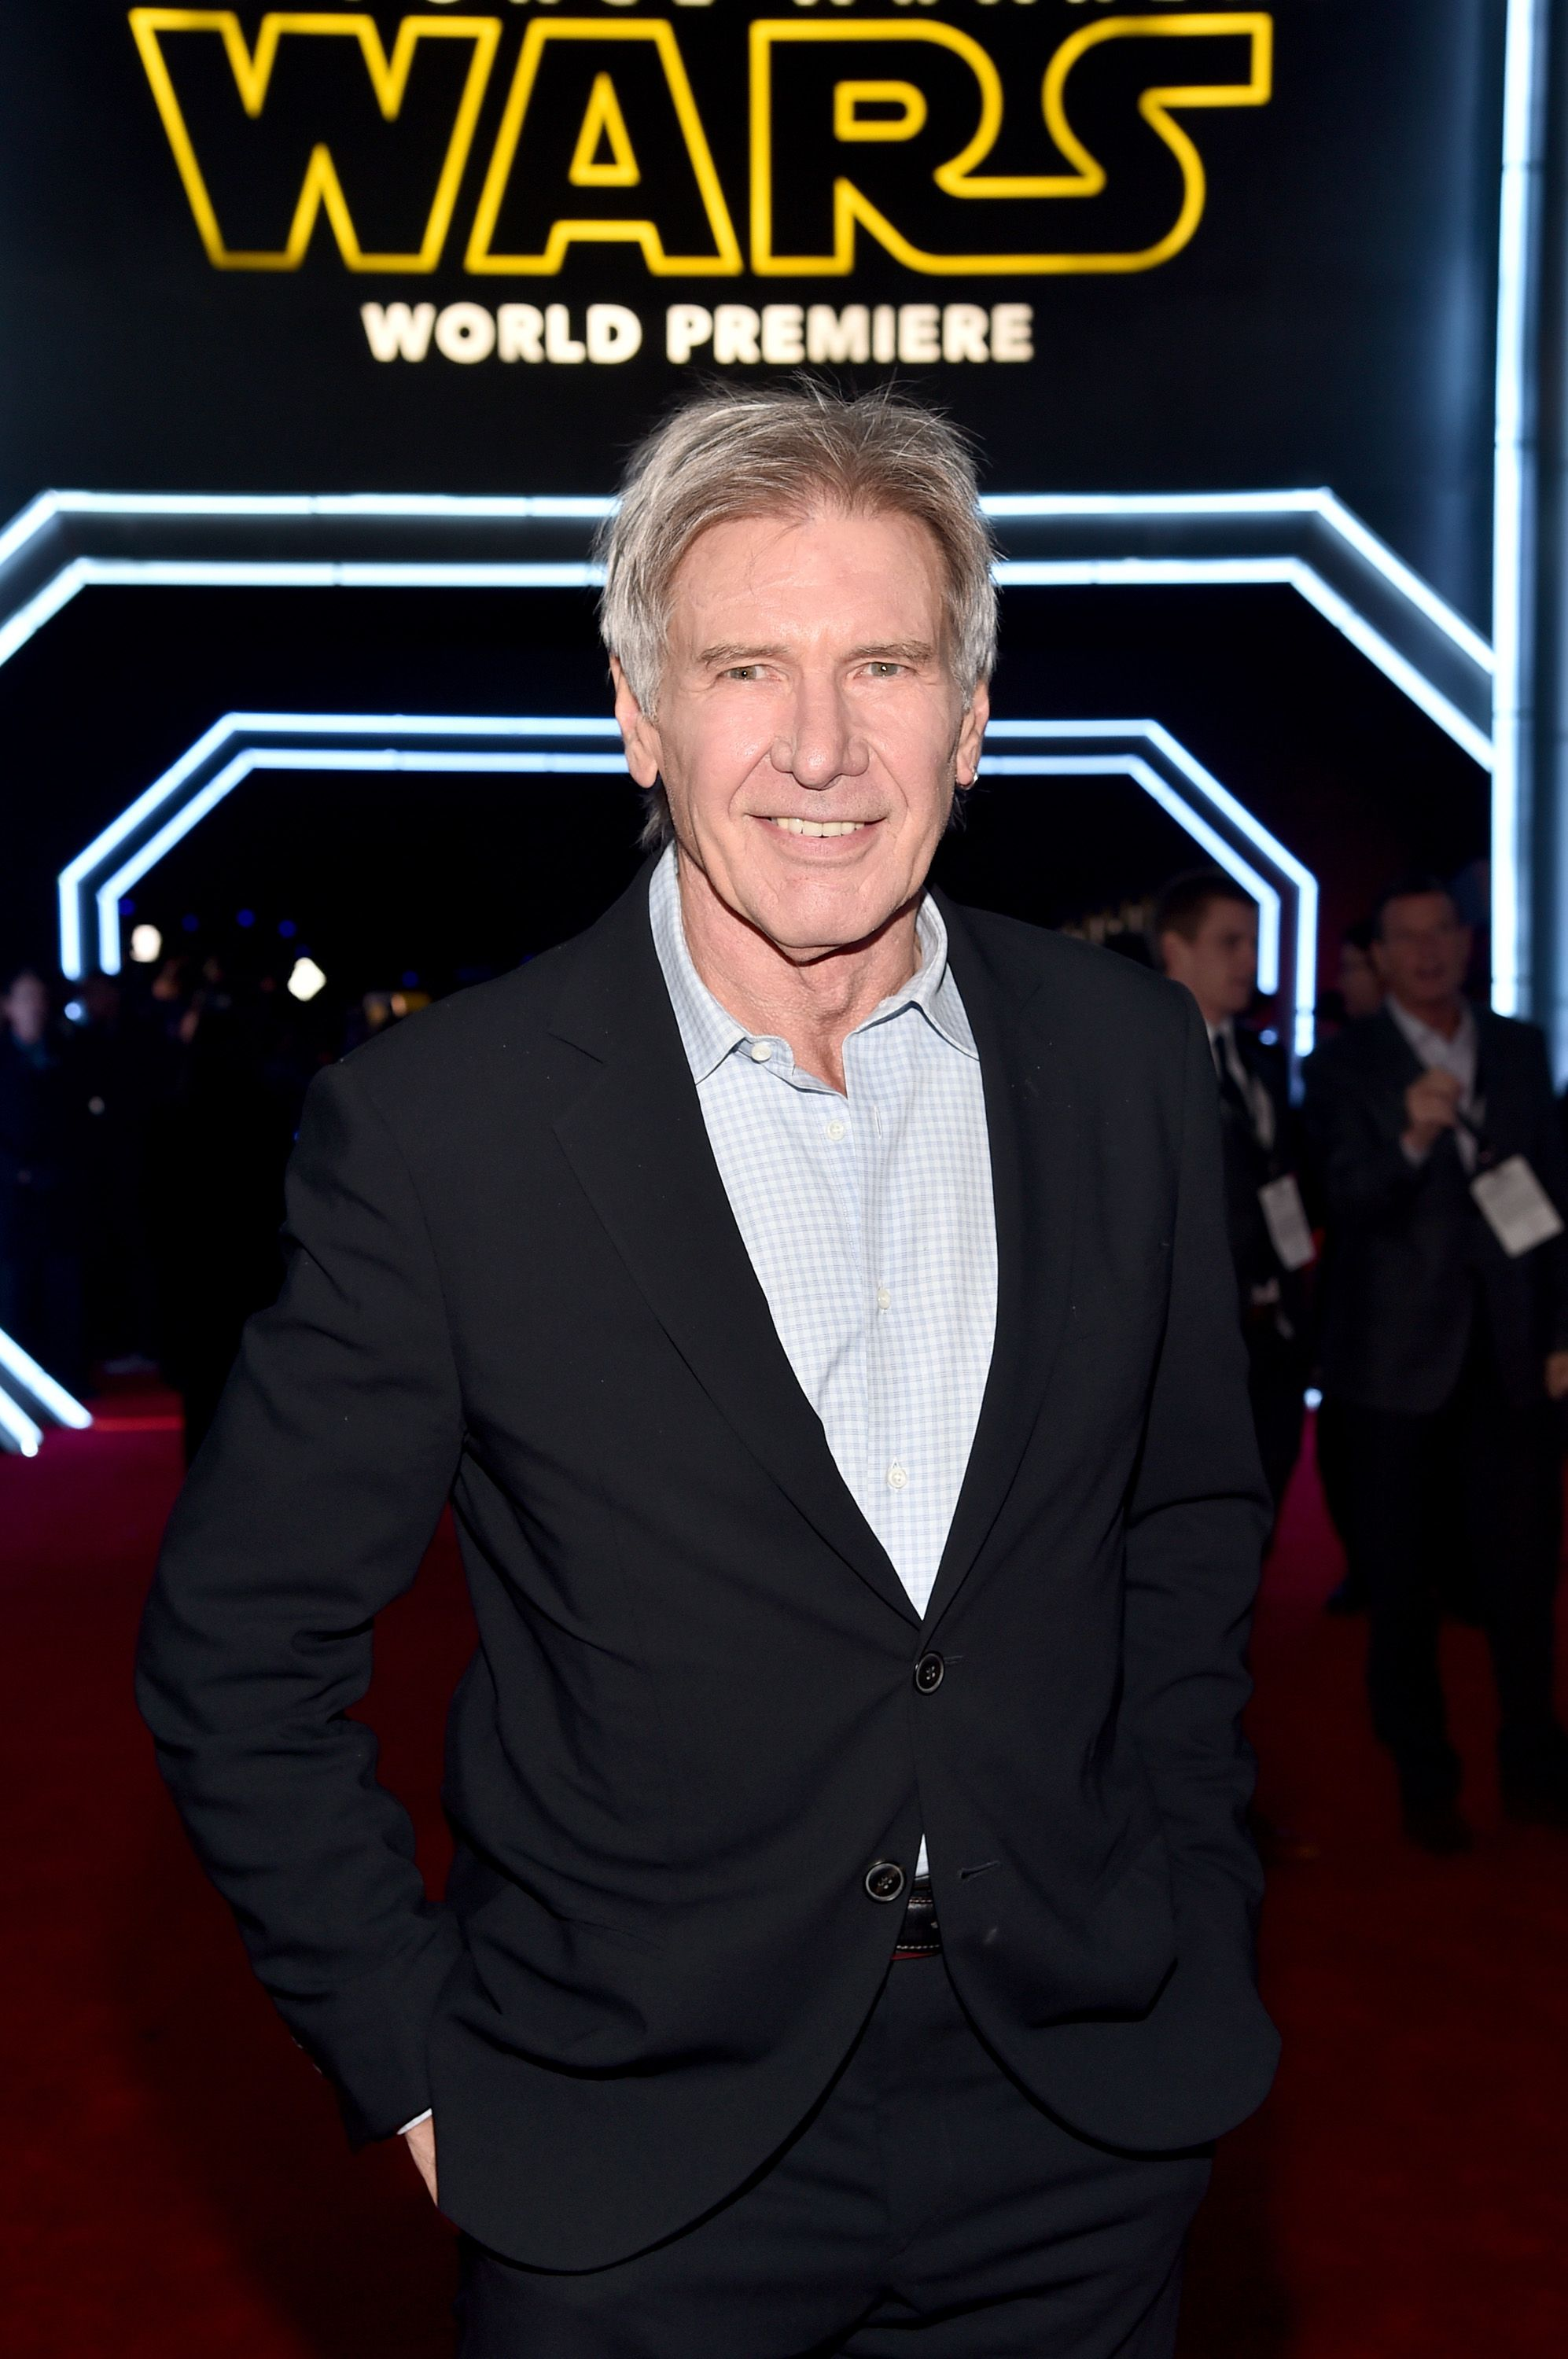 Indiana Jones Helped Make Harrison Ford One of Hollywood's Top-Paid Stars